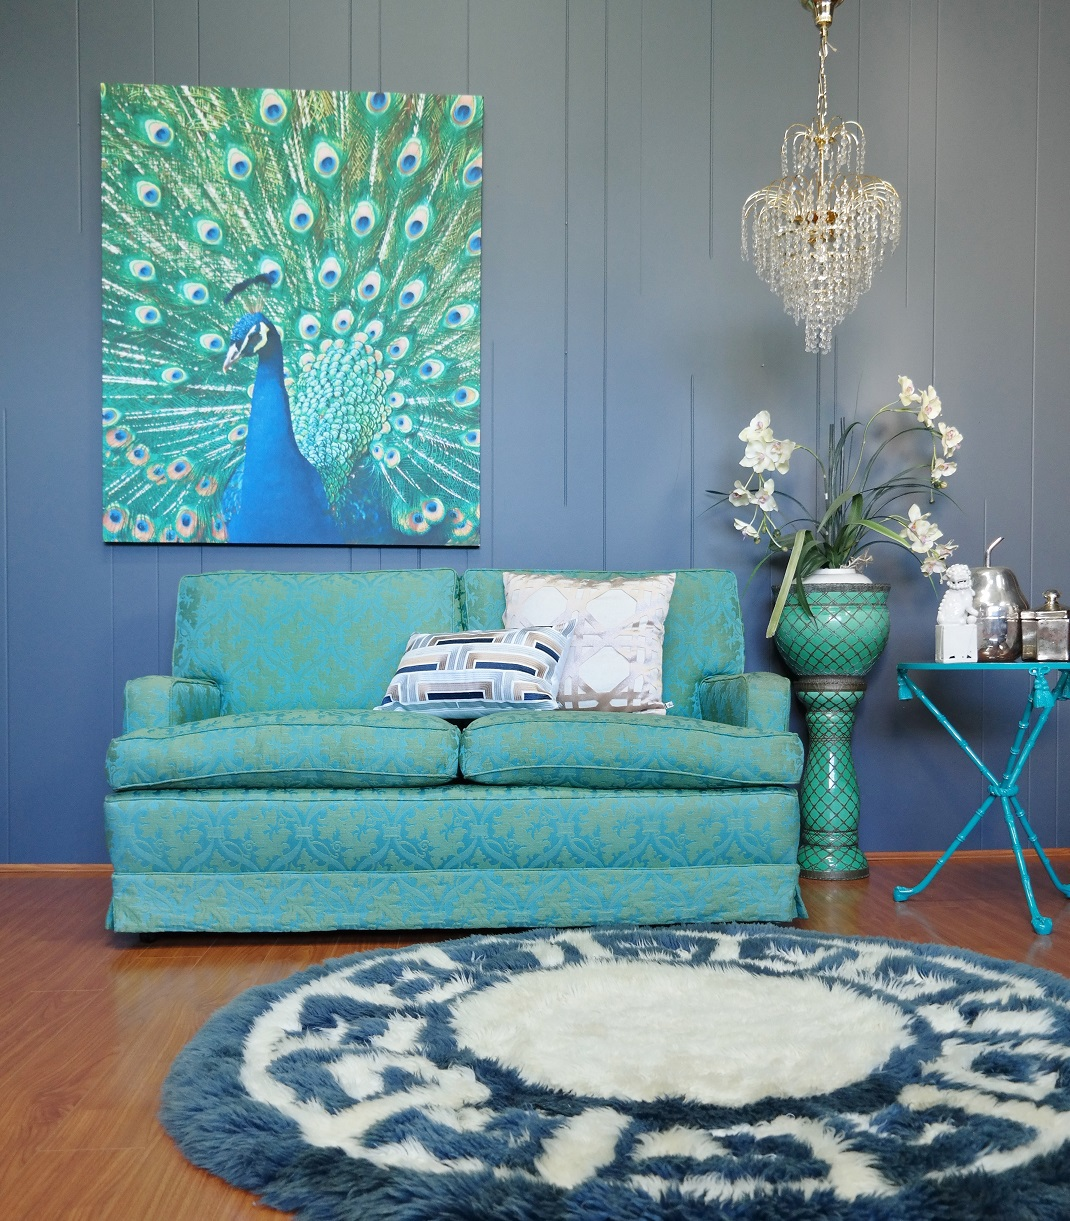 How To Enrich Interior With Royal Turquoise Velvet Fabric